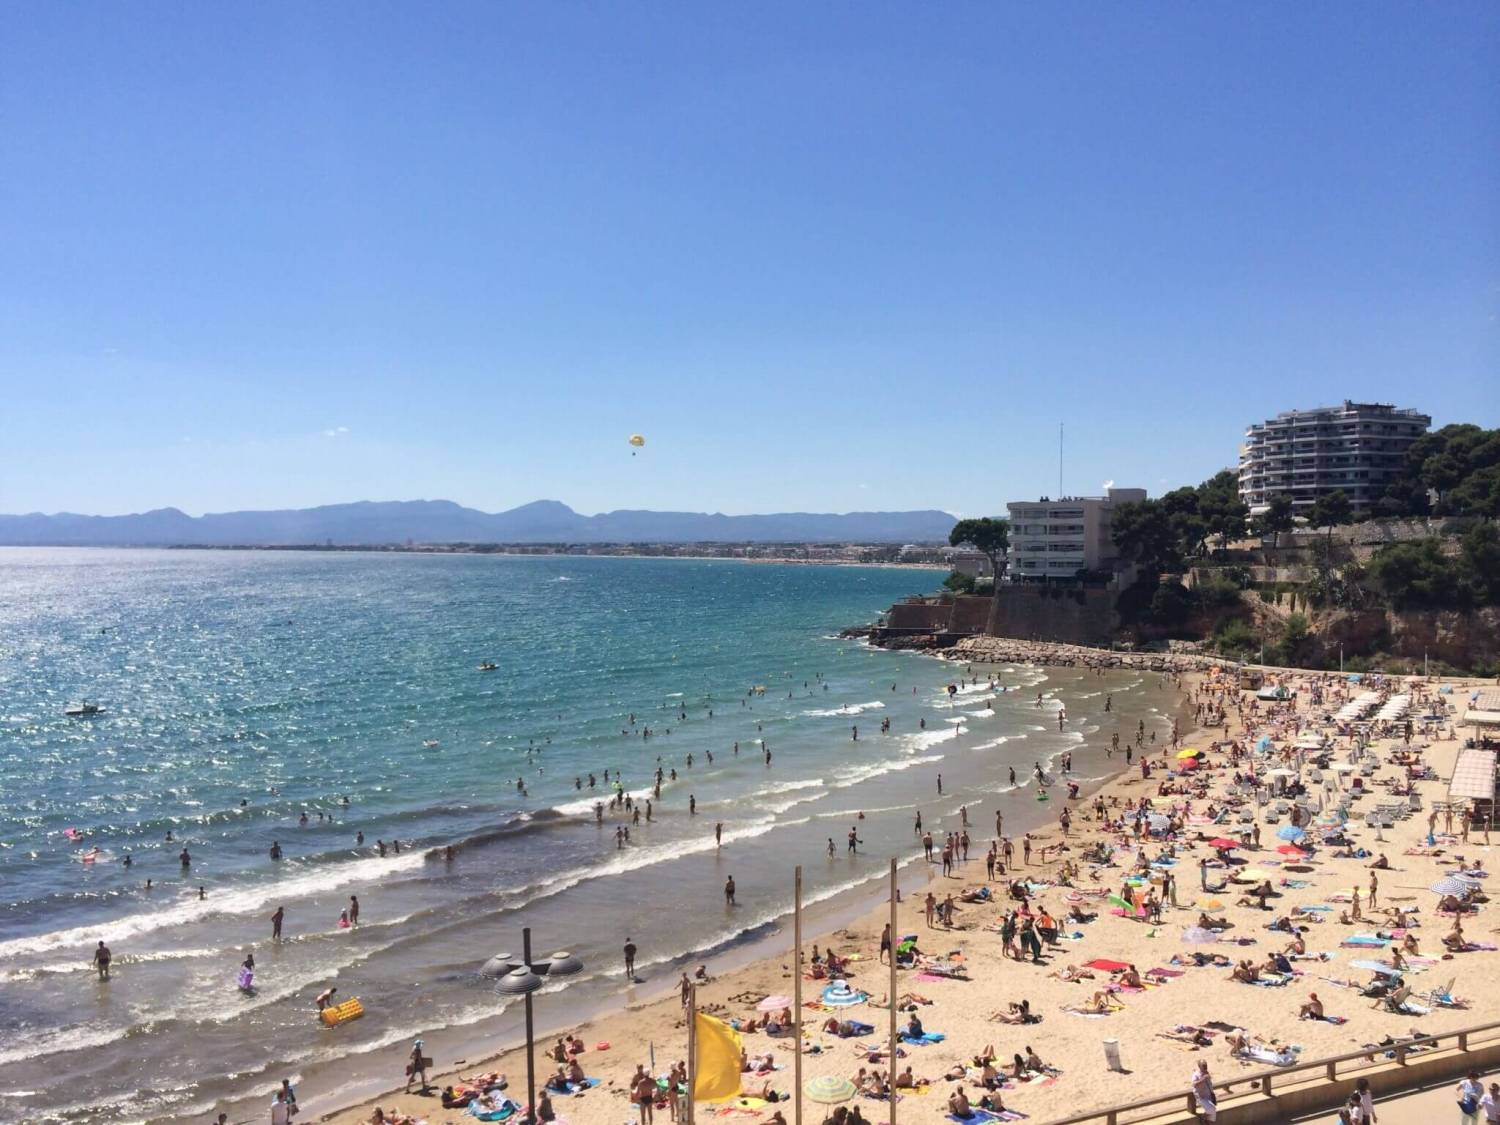 Typical Spanish beach